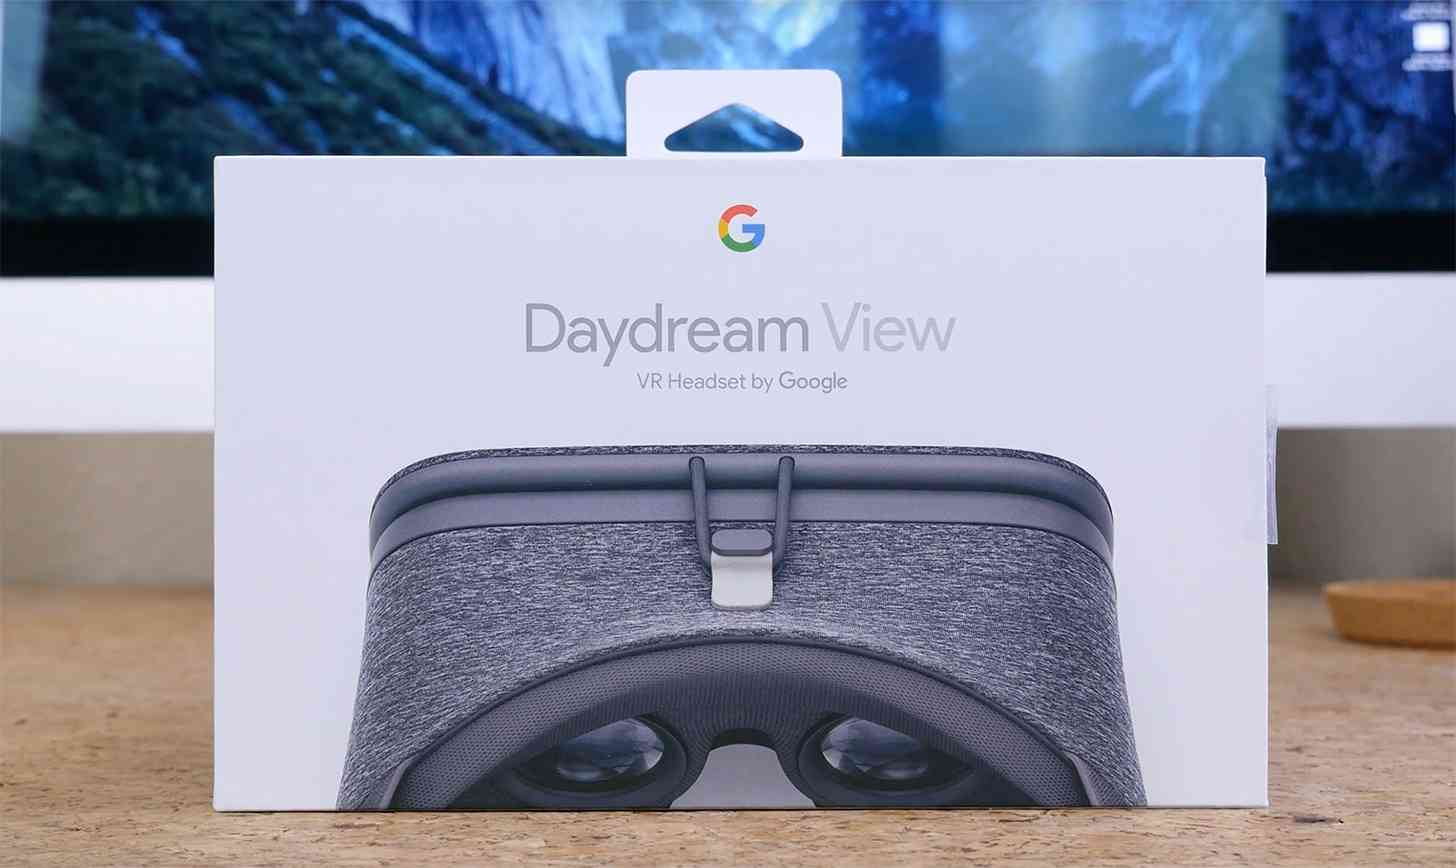 Google Daydream View unboxing